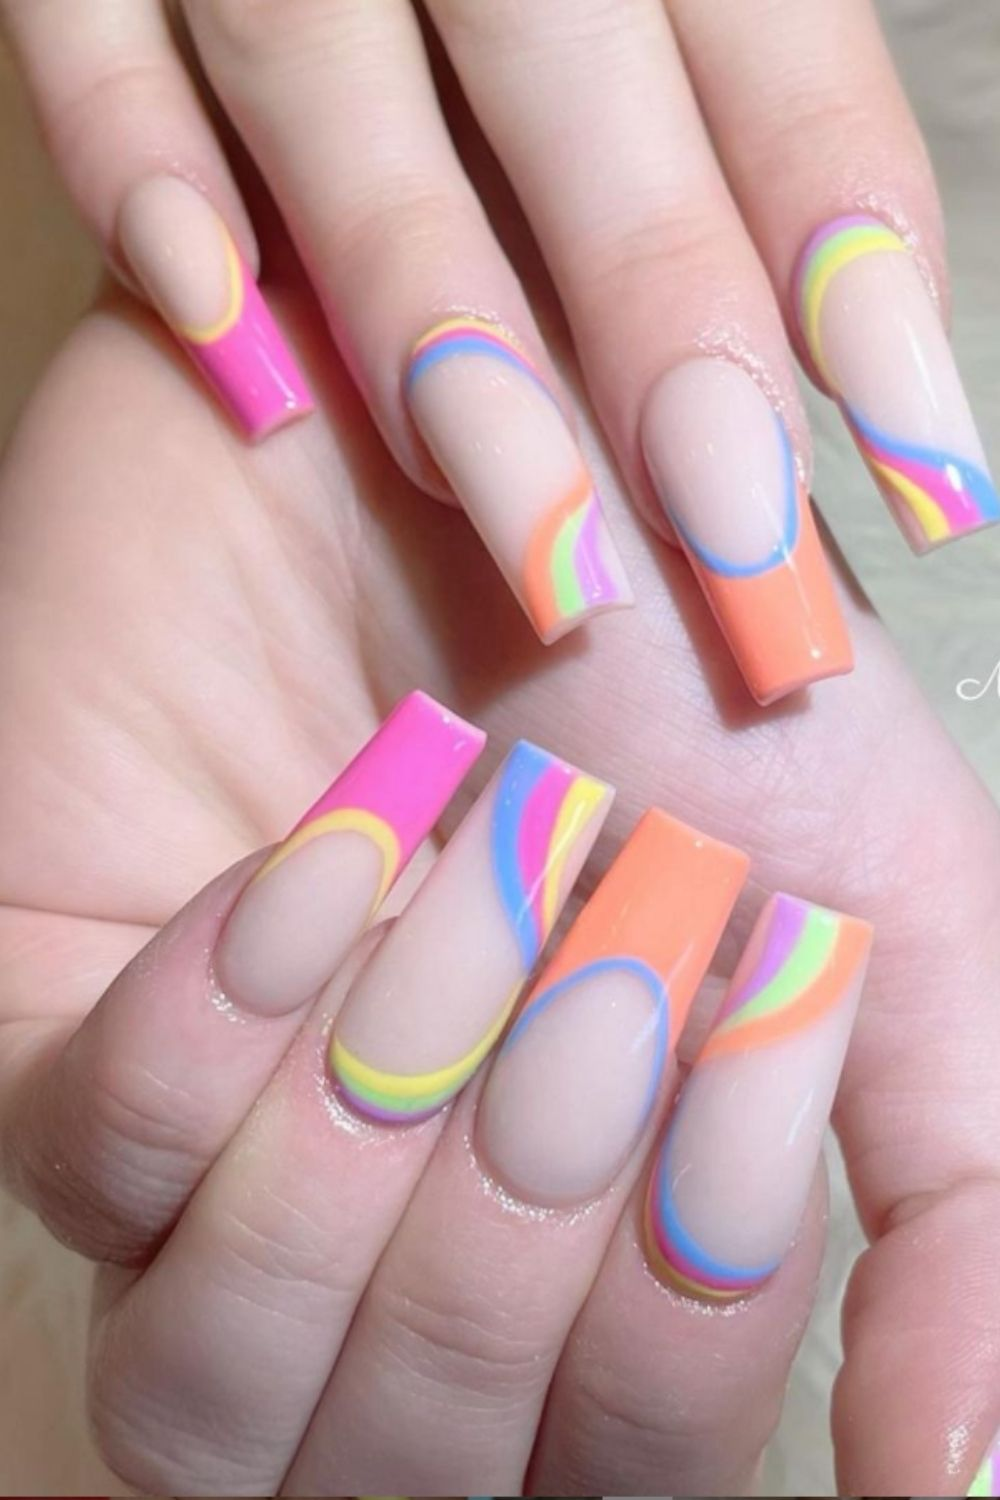 Rinabow nails art for coffin-shaped nail designs